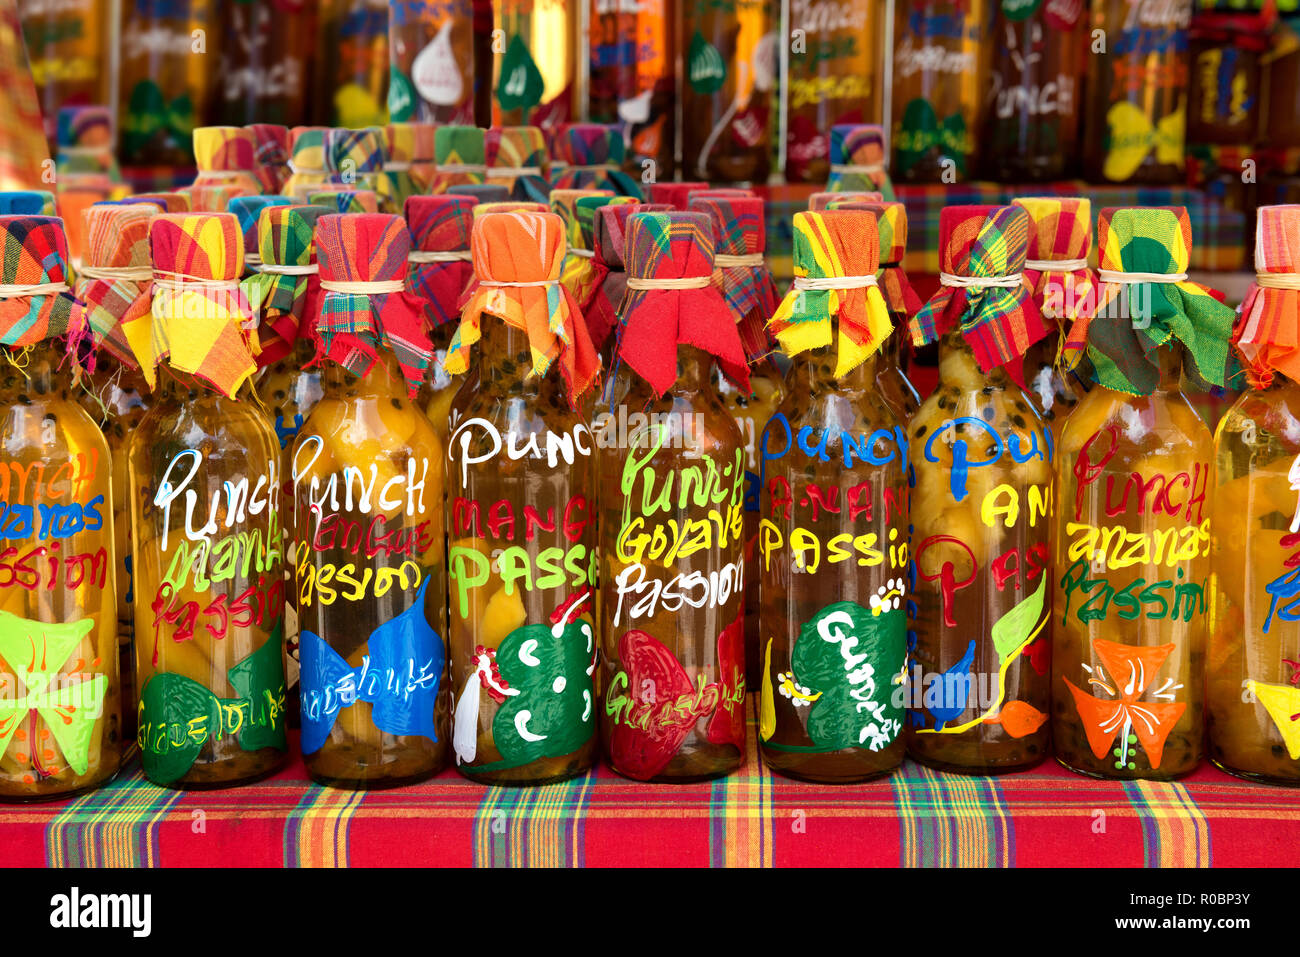 many different colored punch(rum and tropical fruits) bottles in a row on a typical market,guadeloupe, french west indies. - Stock Image